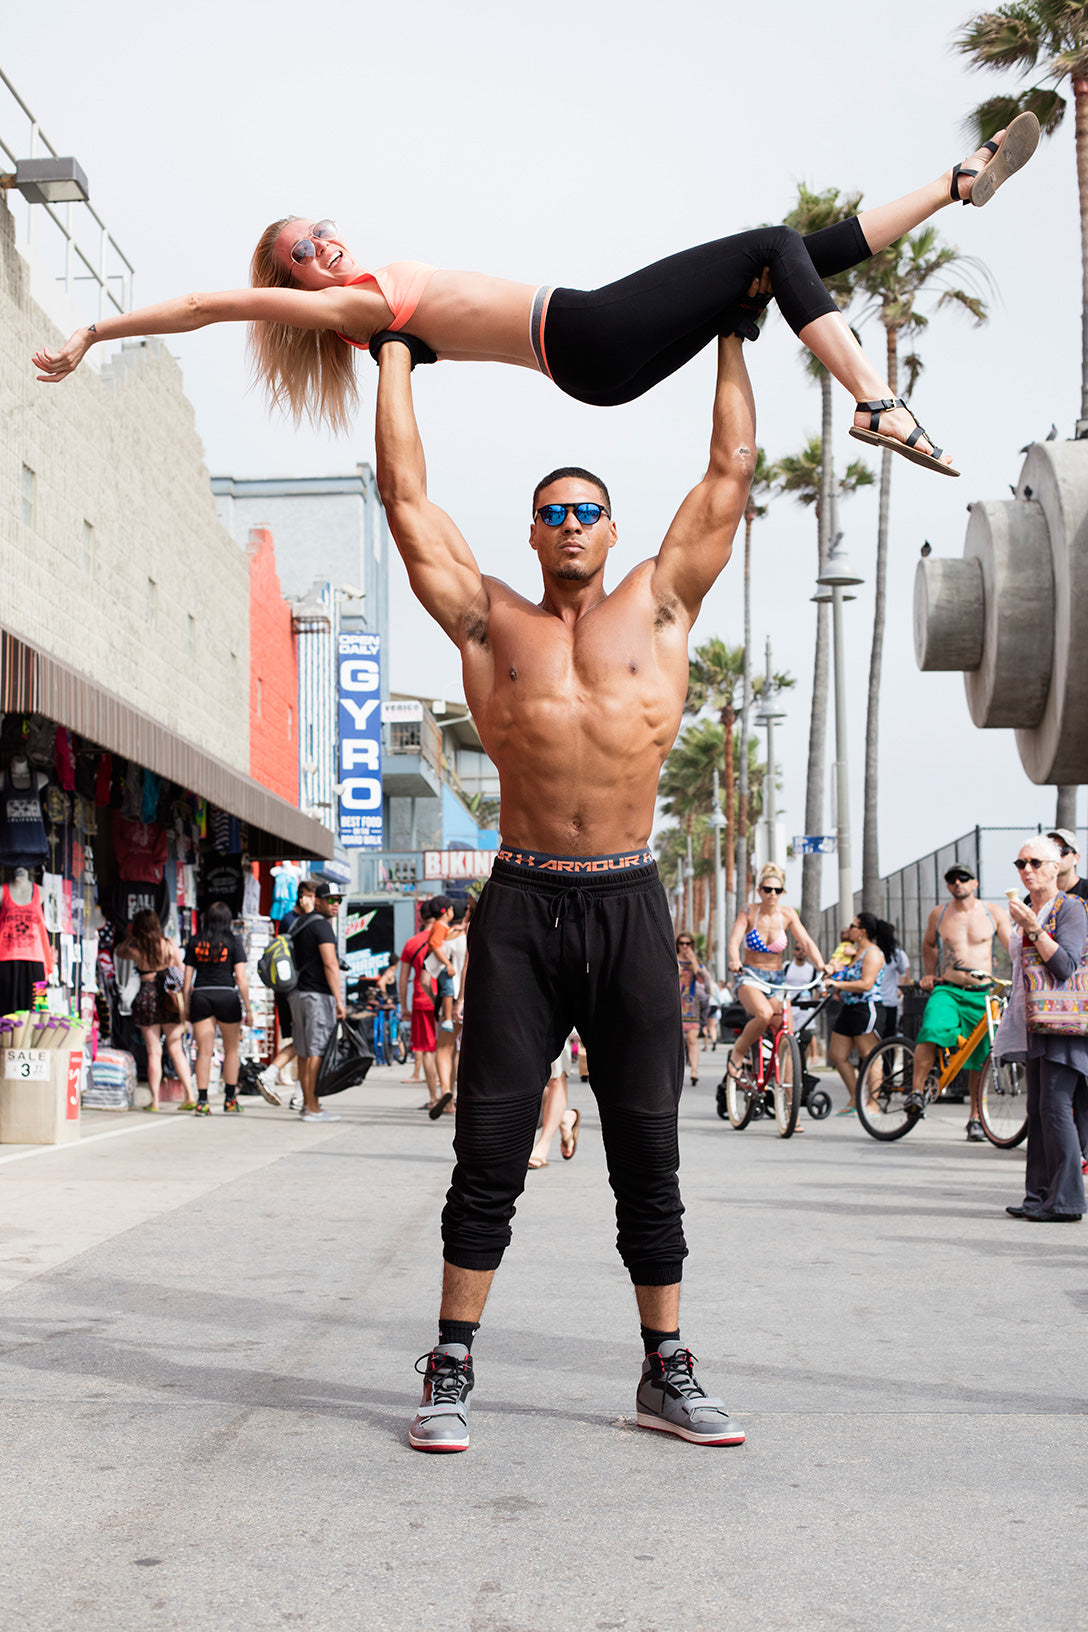 Muscle beach body builder poses lifting a person in air